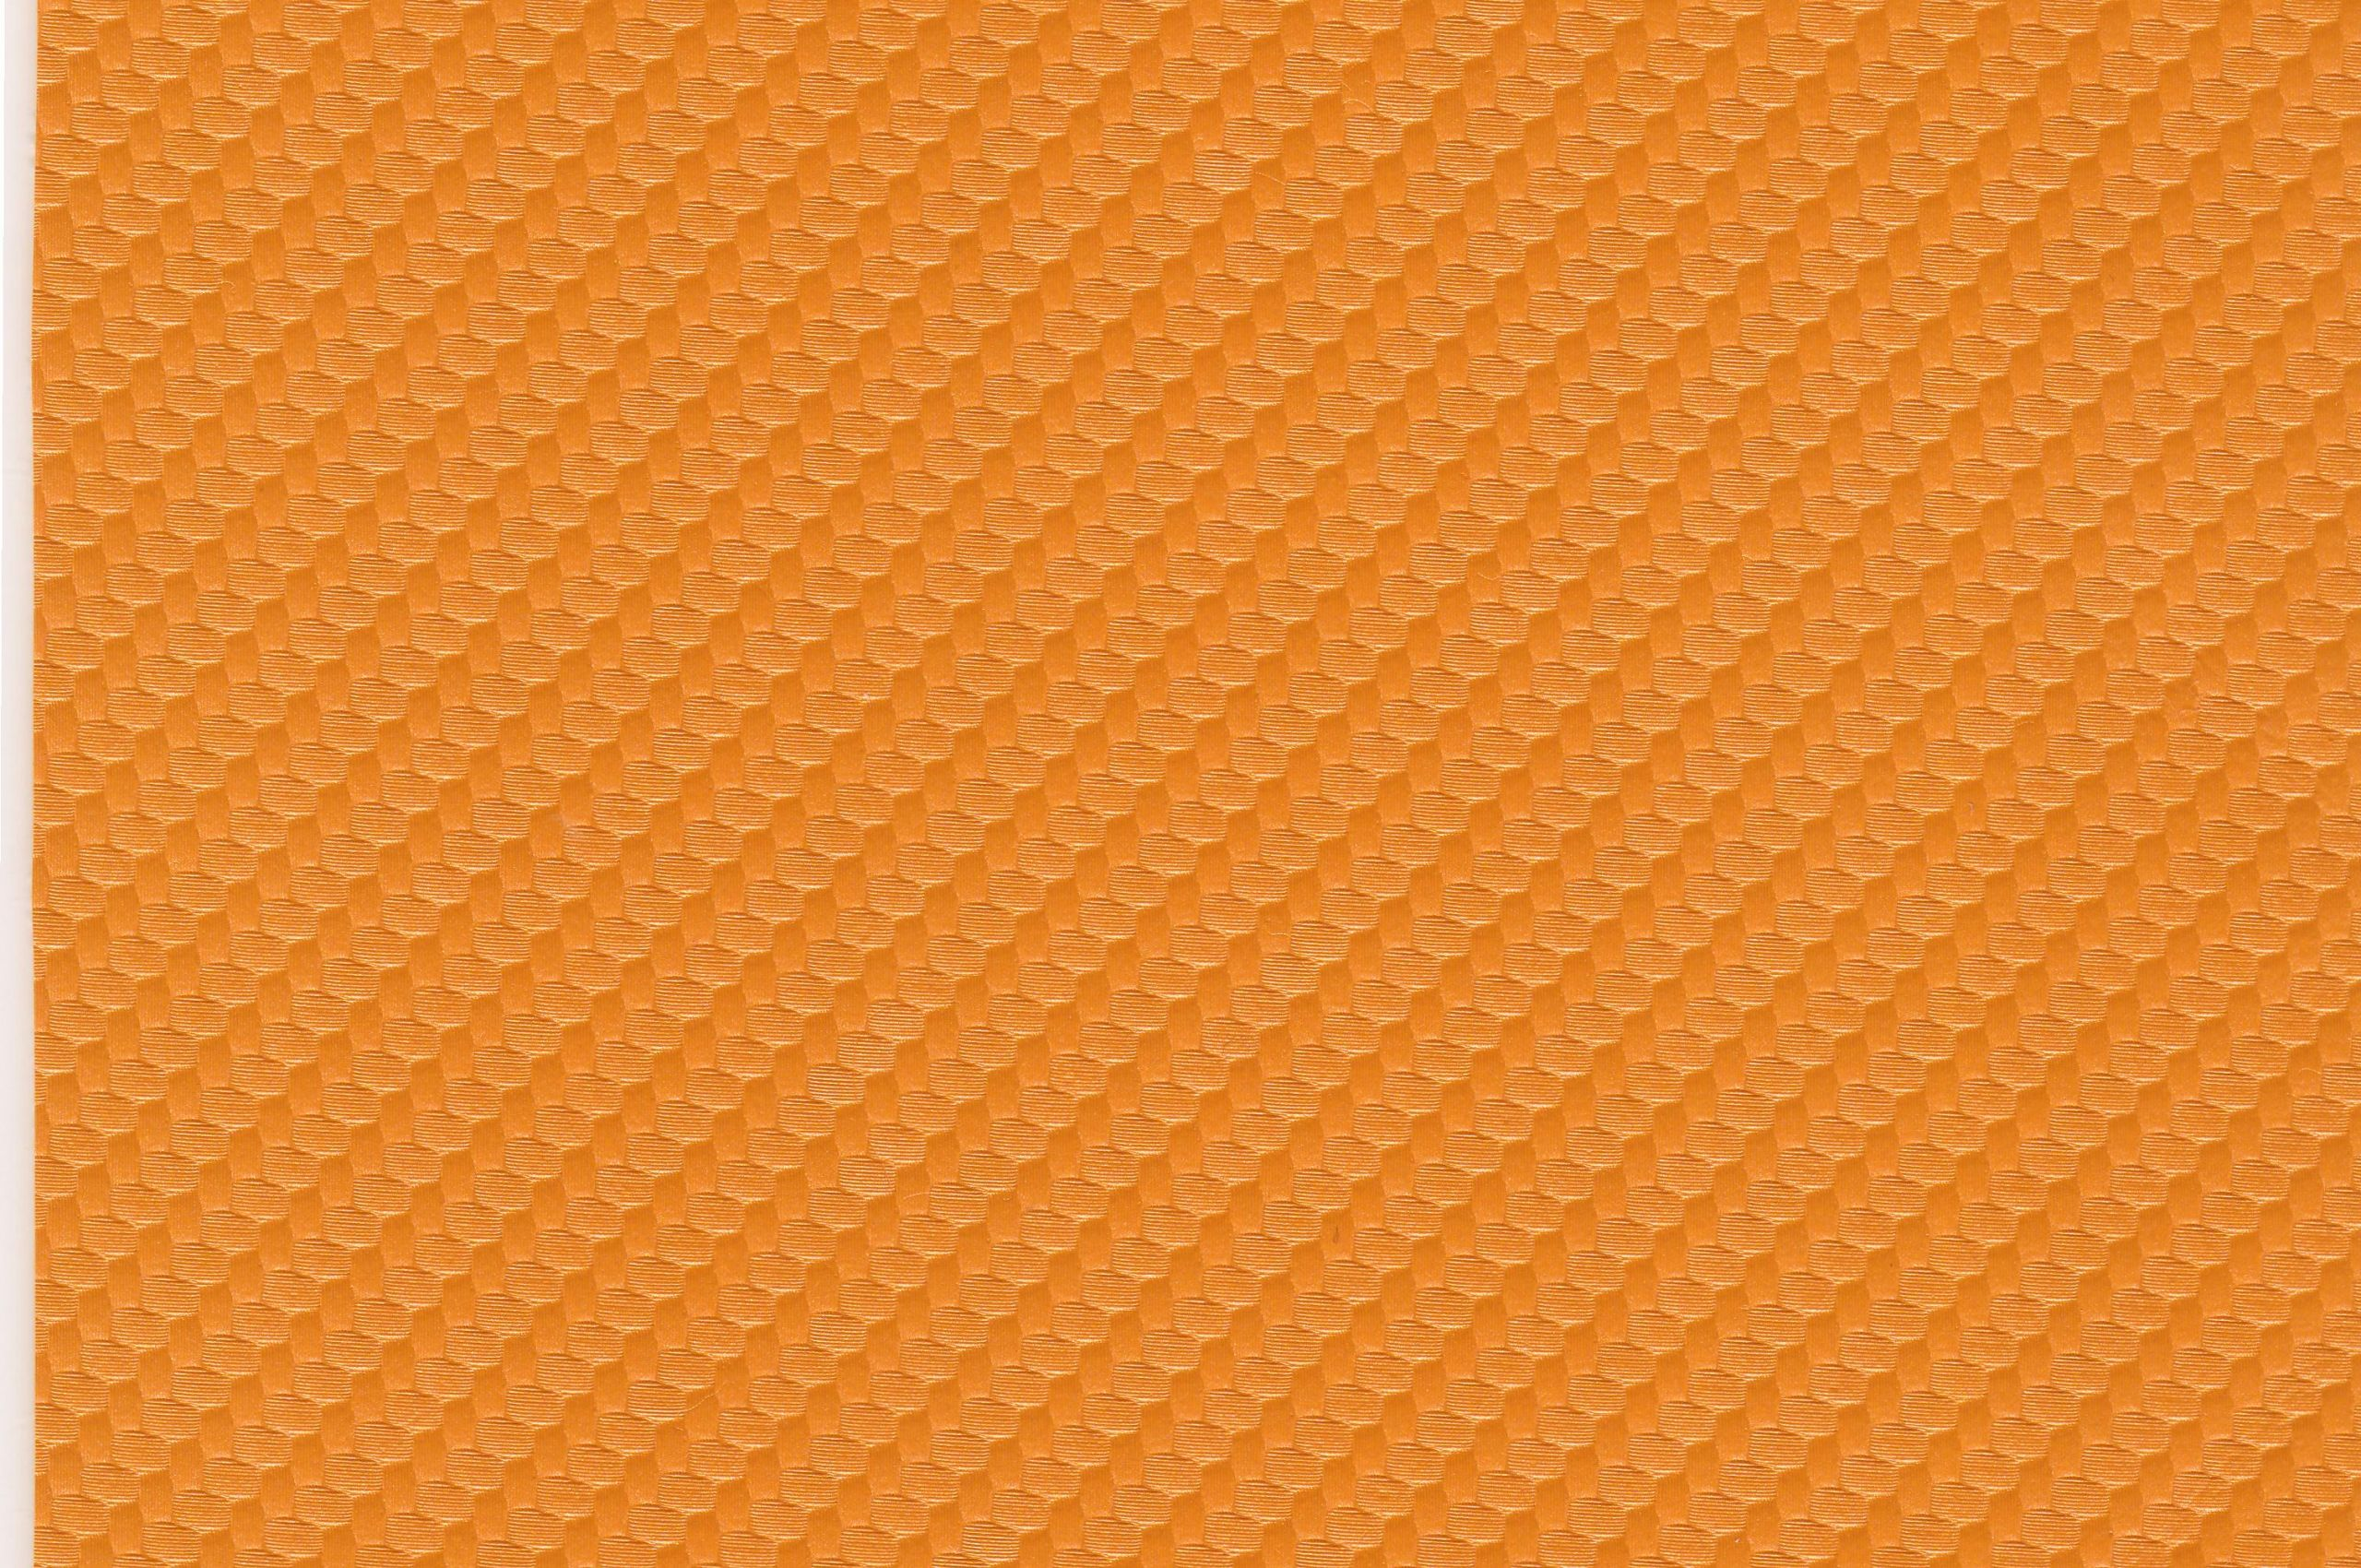 2560x1700 Free download Wallpaper Orange Wallpapers [3017x4856] for ...